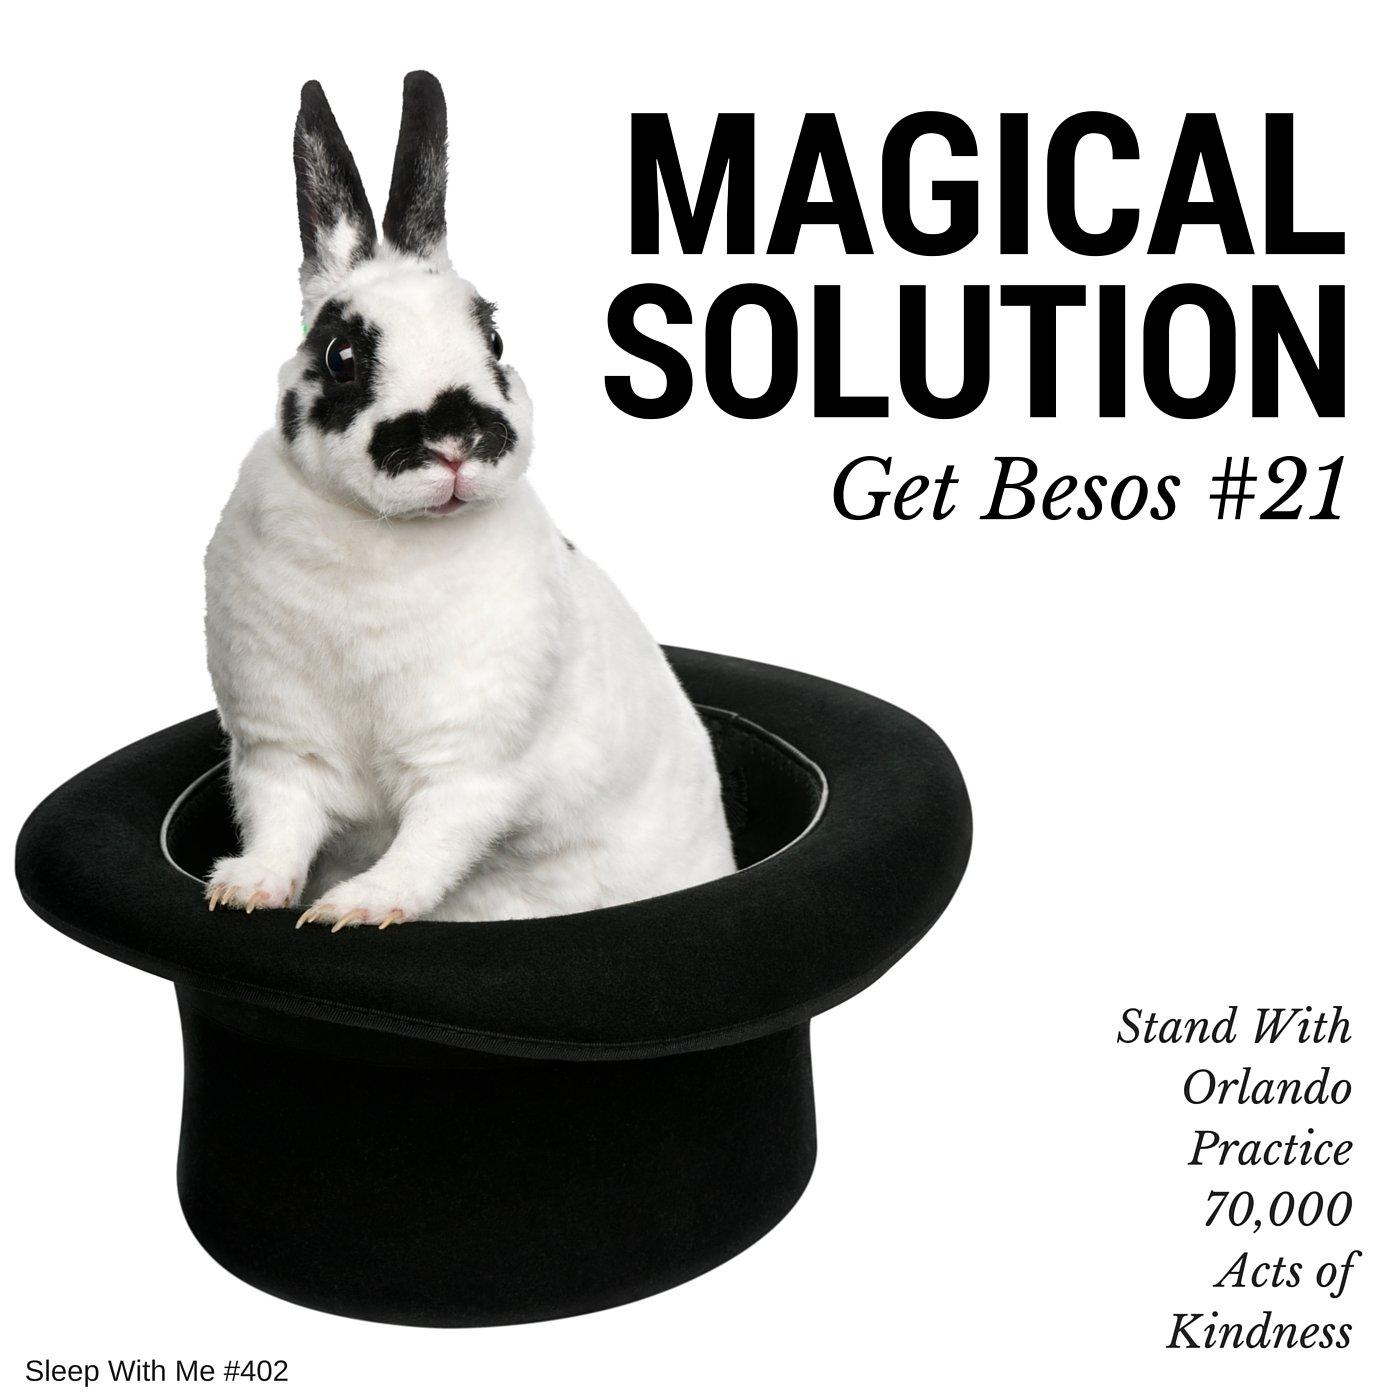 Magical Solution | Get Besos #21 | Sleep With Me #402